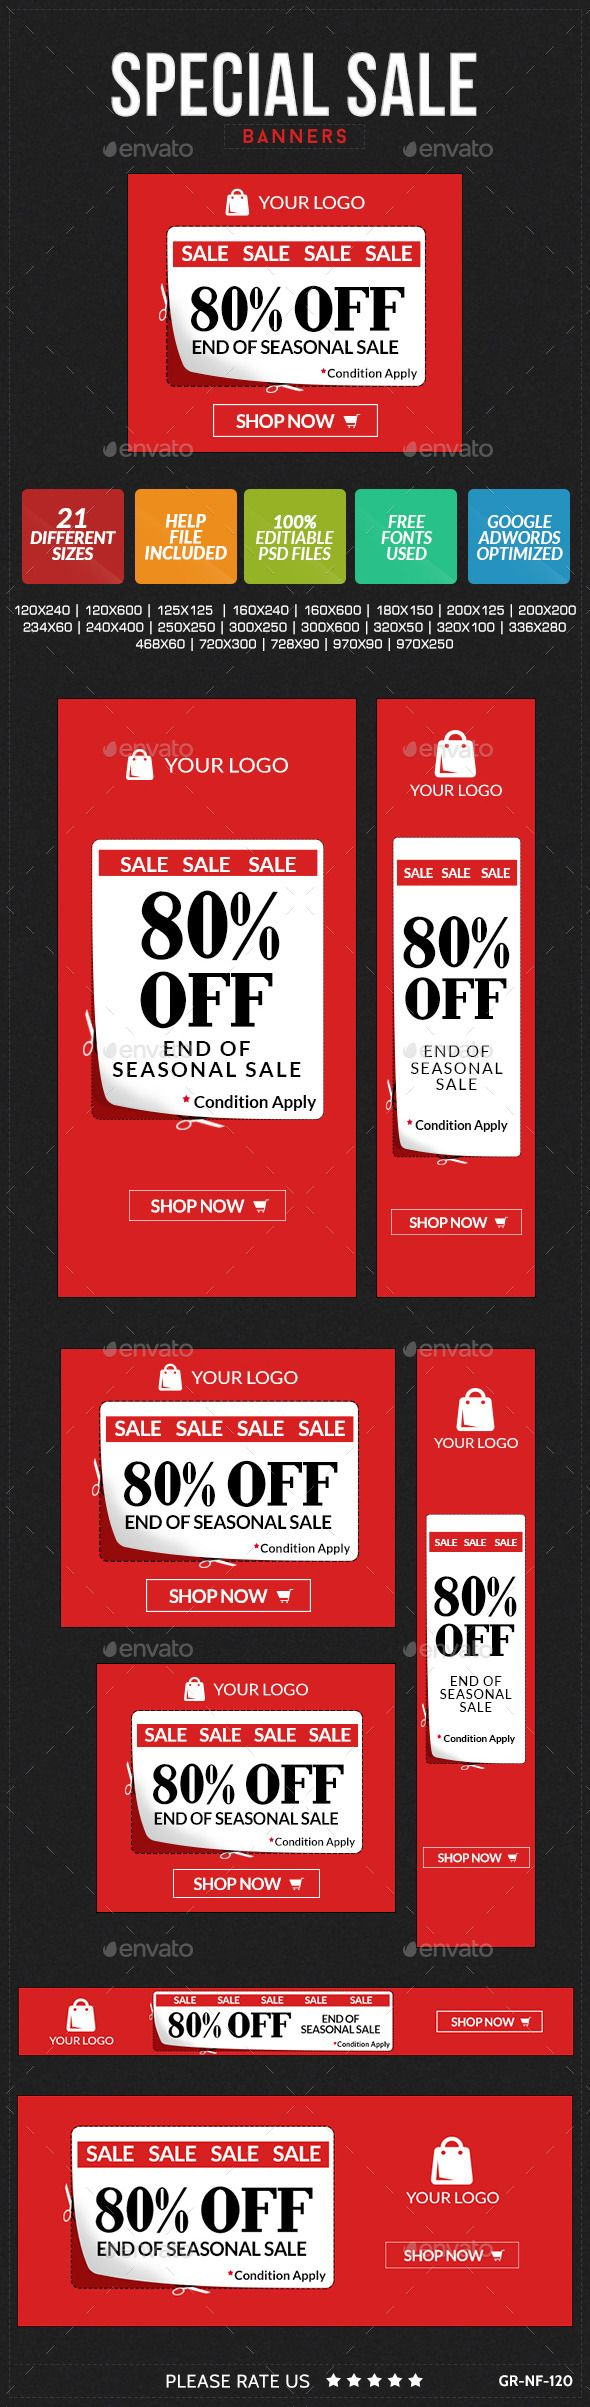 Special Sale Web Banners Template PSD | Buy and Download: http://graphicriver.net/item/special-sale-banners/9096931?WT.ac=category_thumb&WT.z_author=doto&ref=ksioks